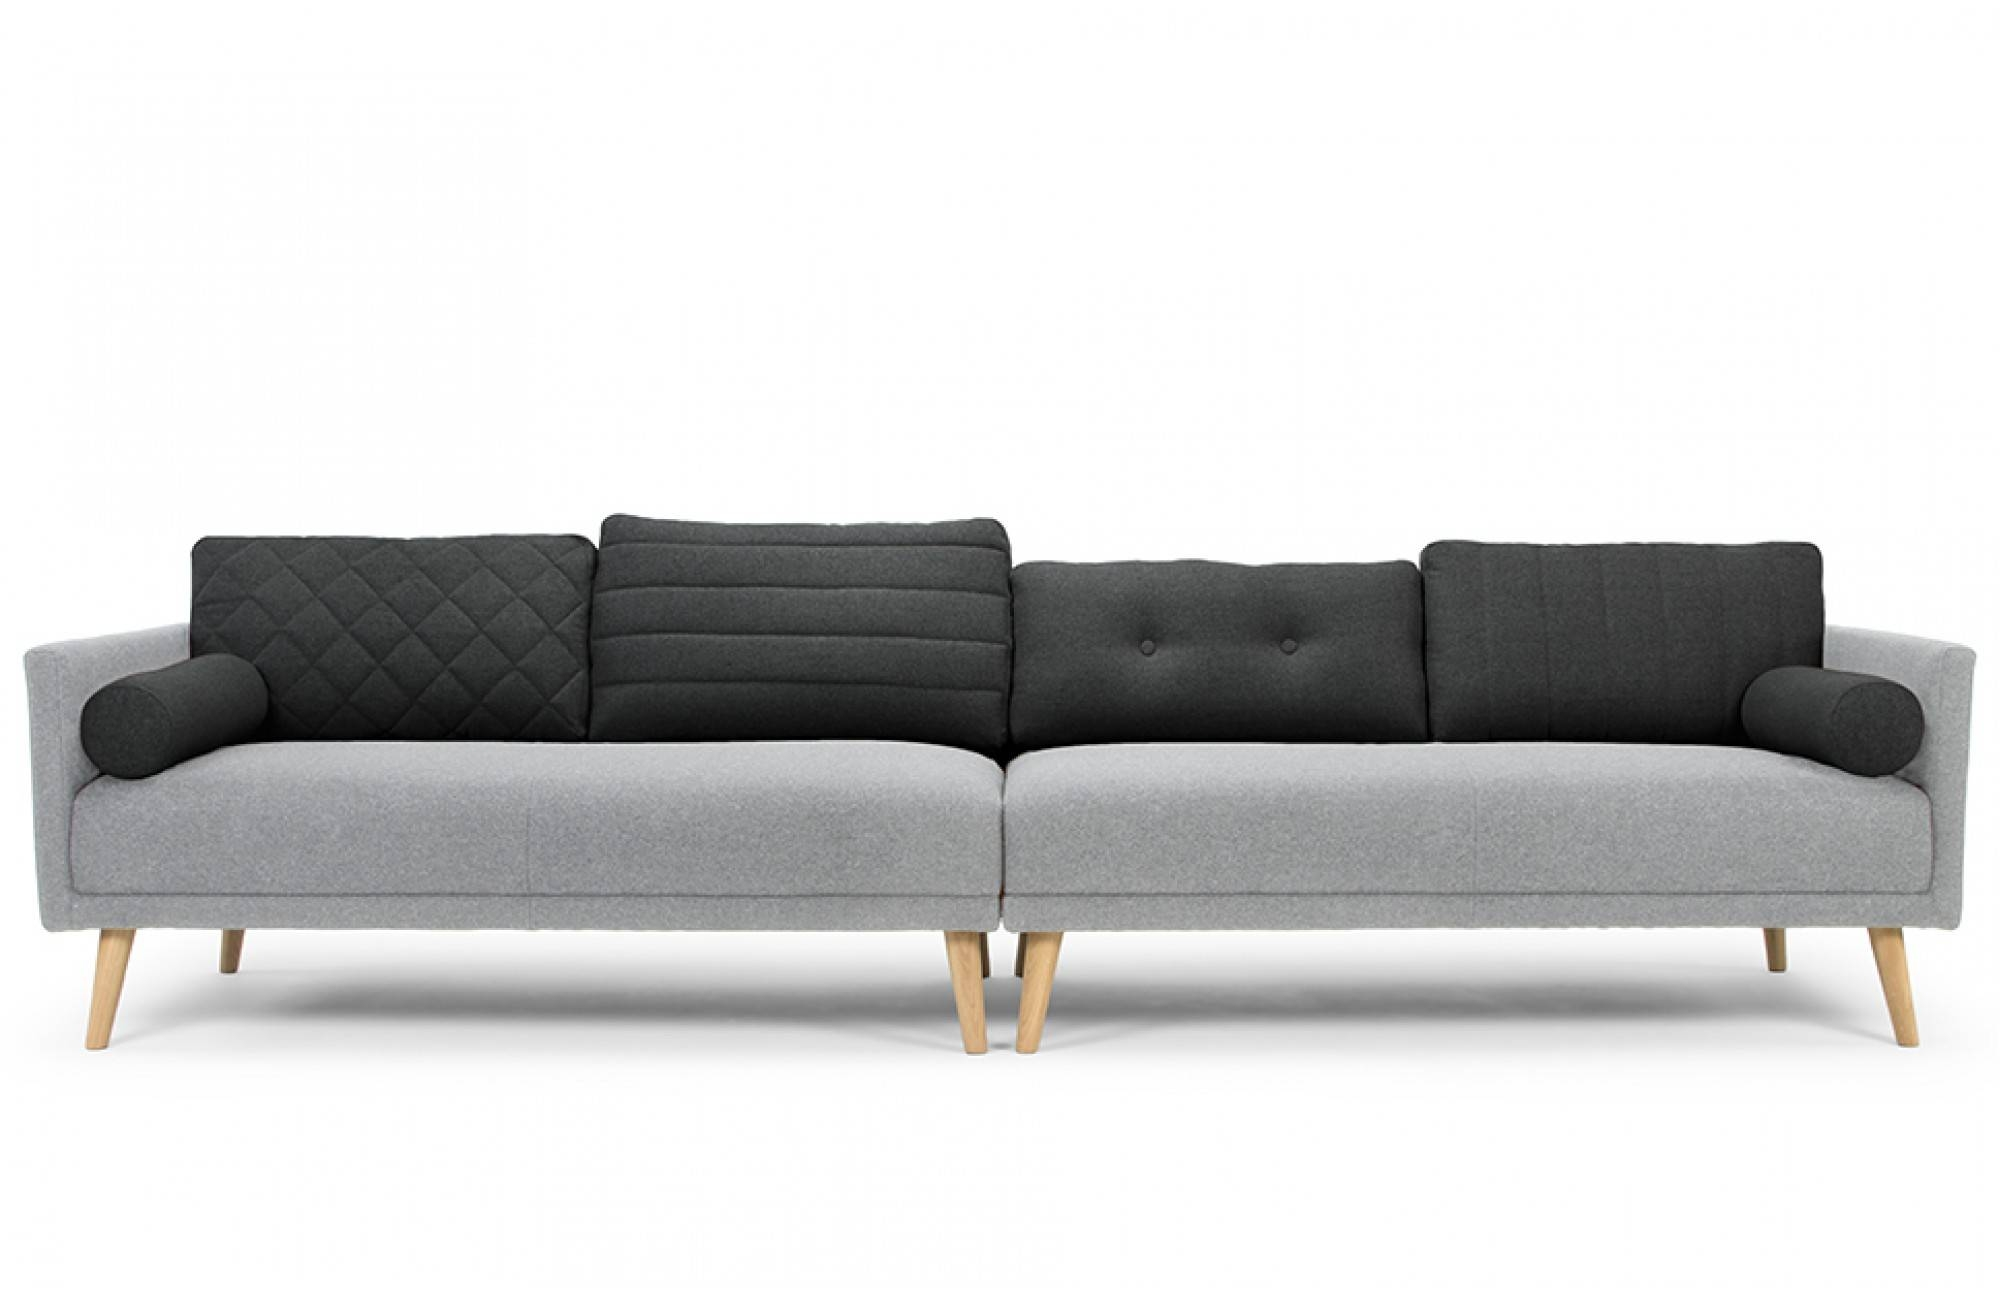 Dixie Mix 4 Seater Sofa Out And Out Original with Four Seater Sofas (Image 6 of 30)